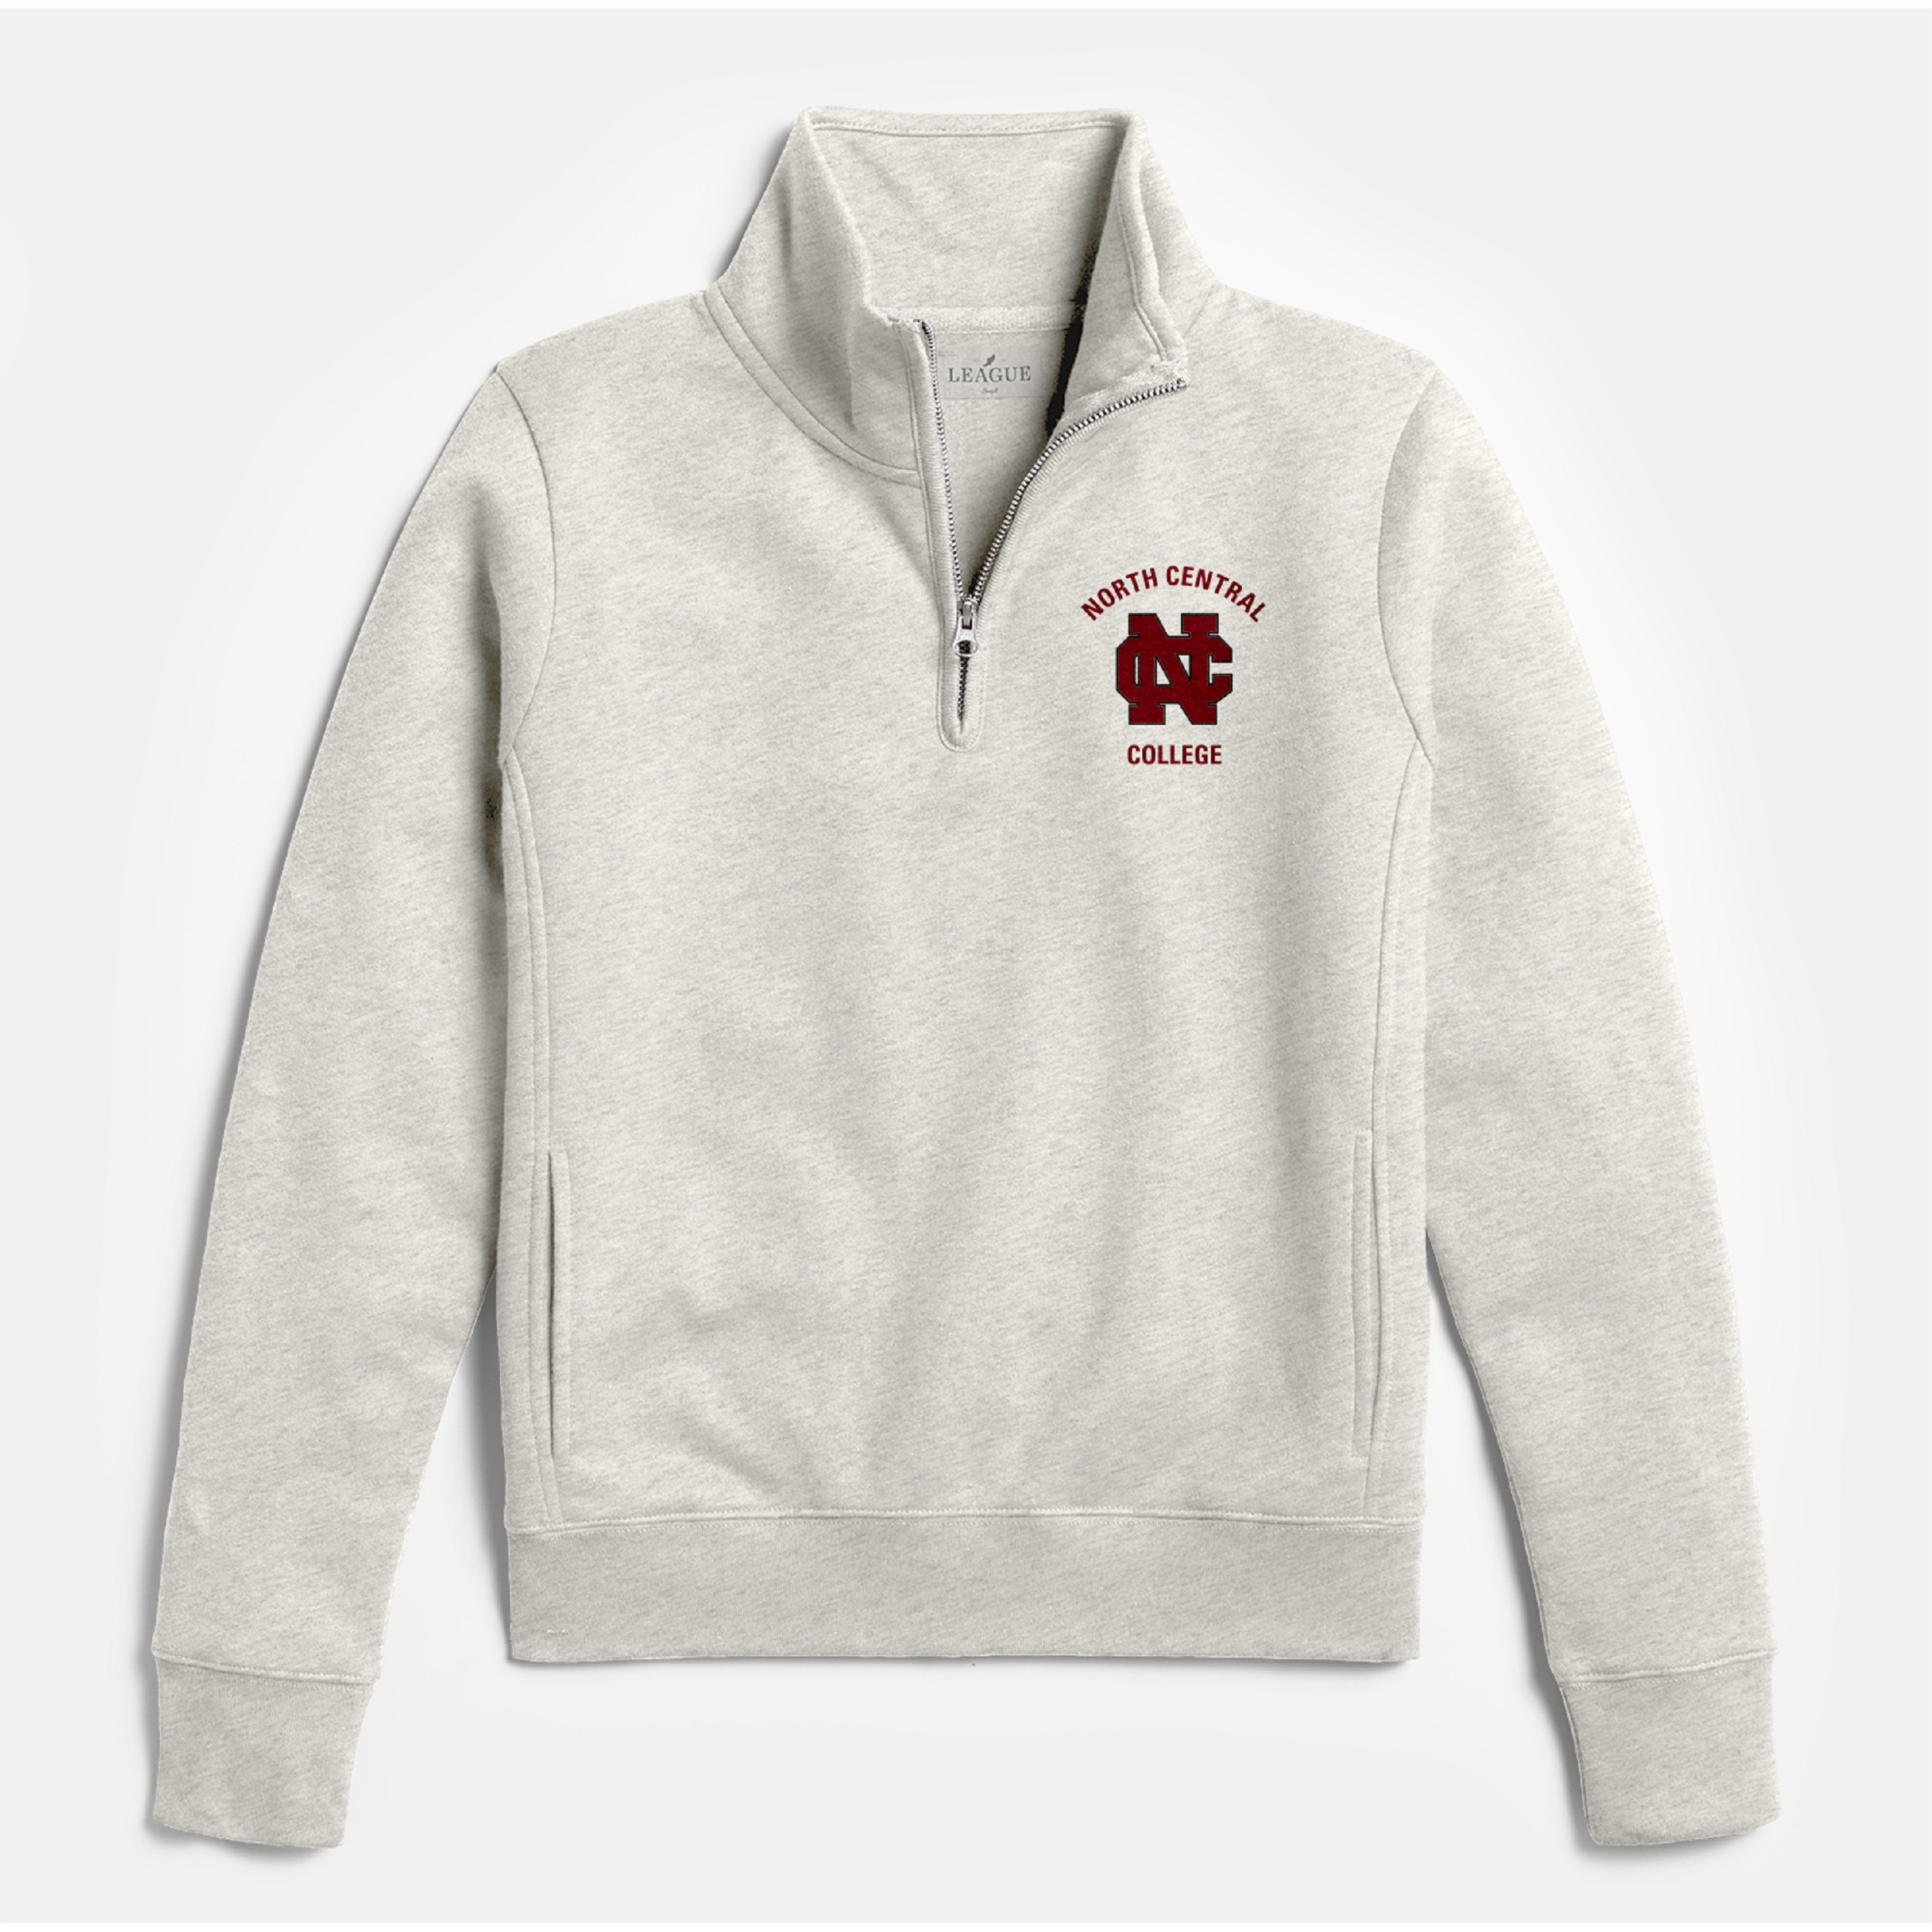 Alternative Image for the North Central College Academy 1/4 Zip by League product